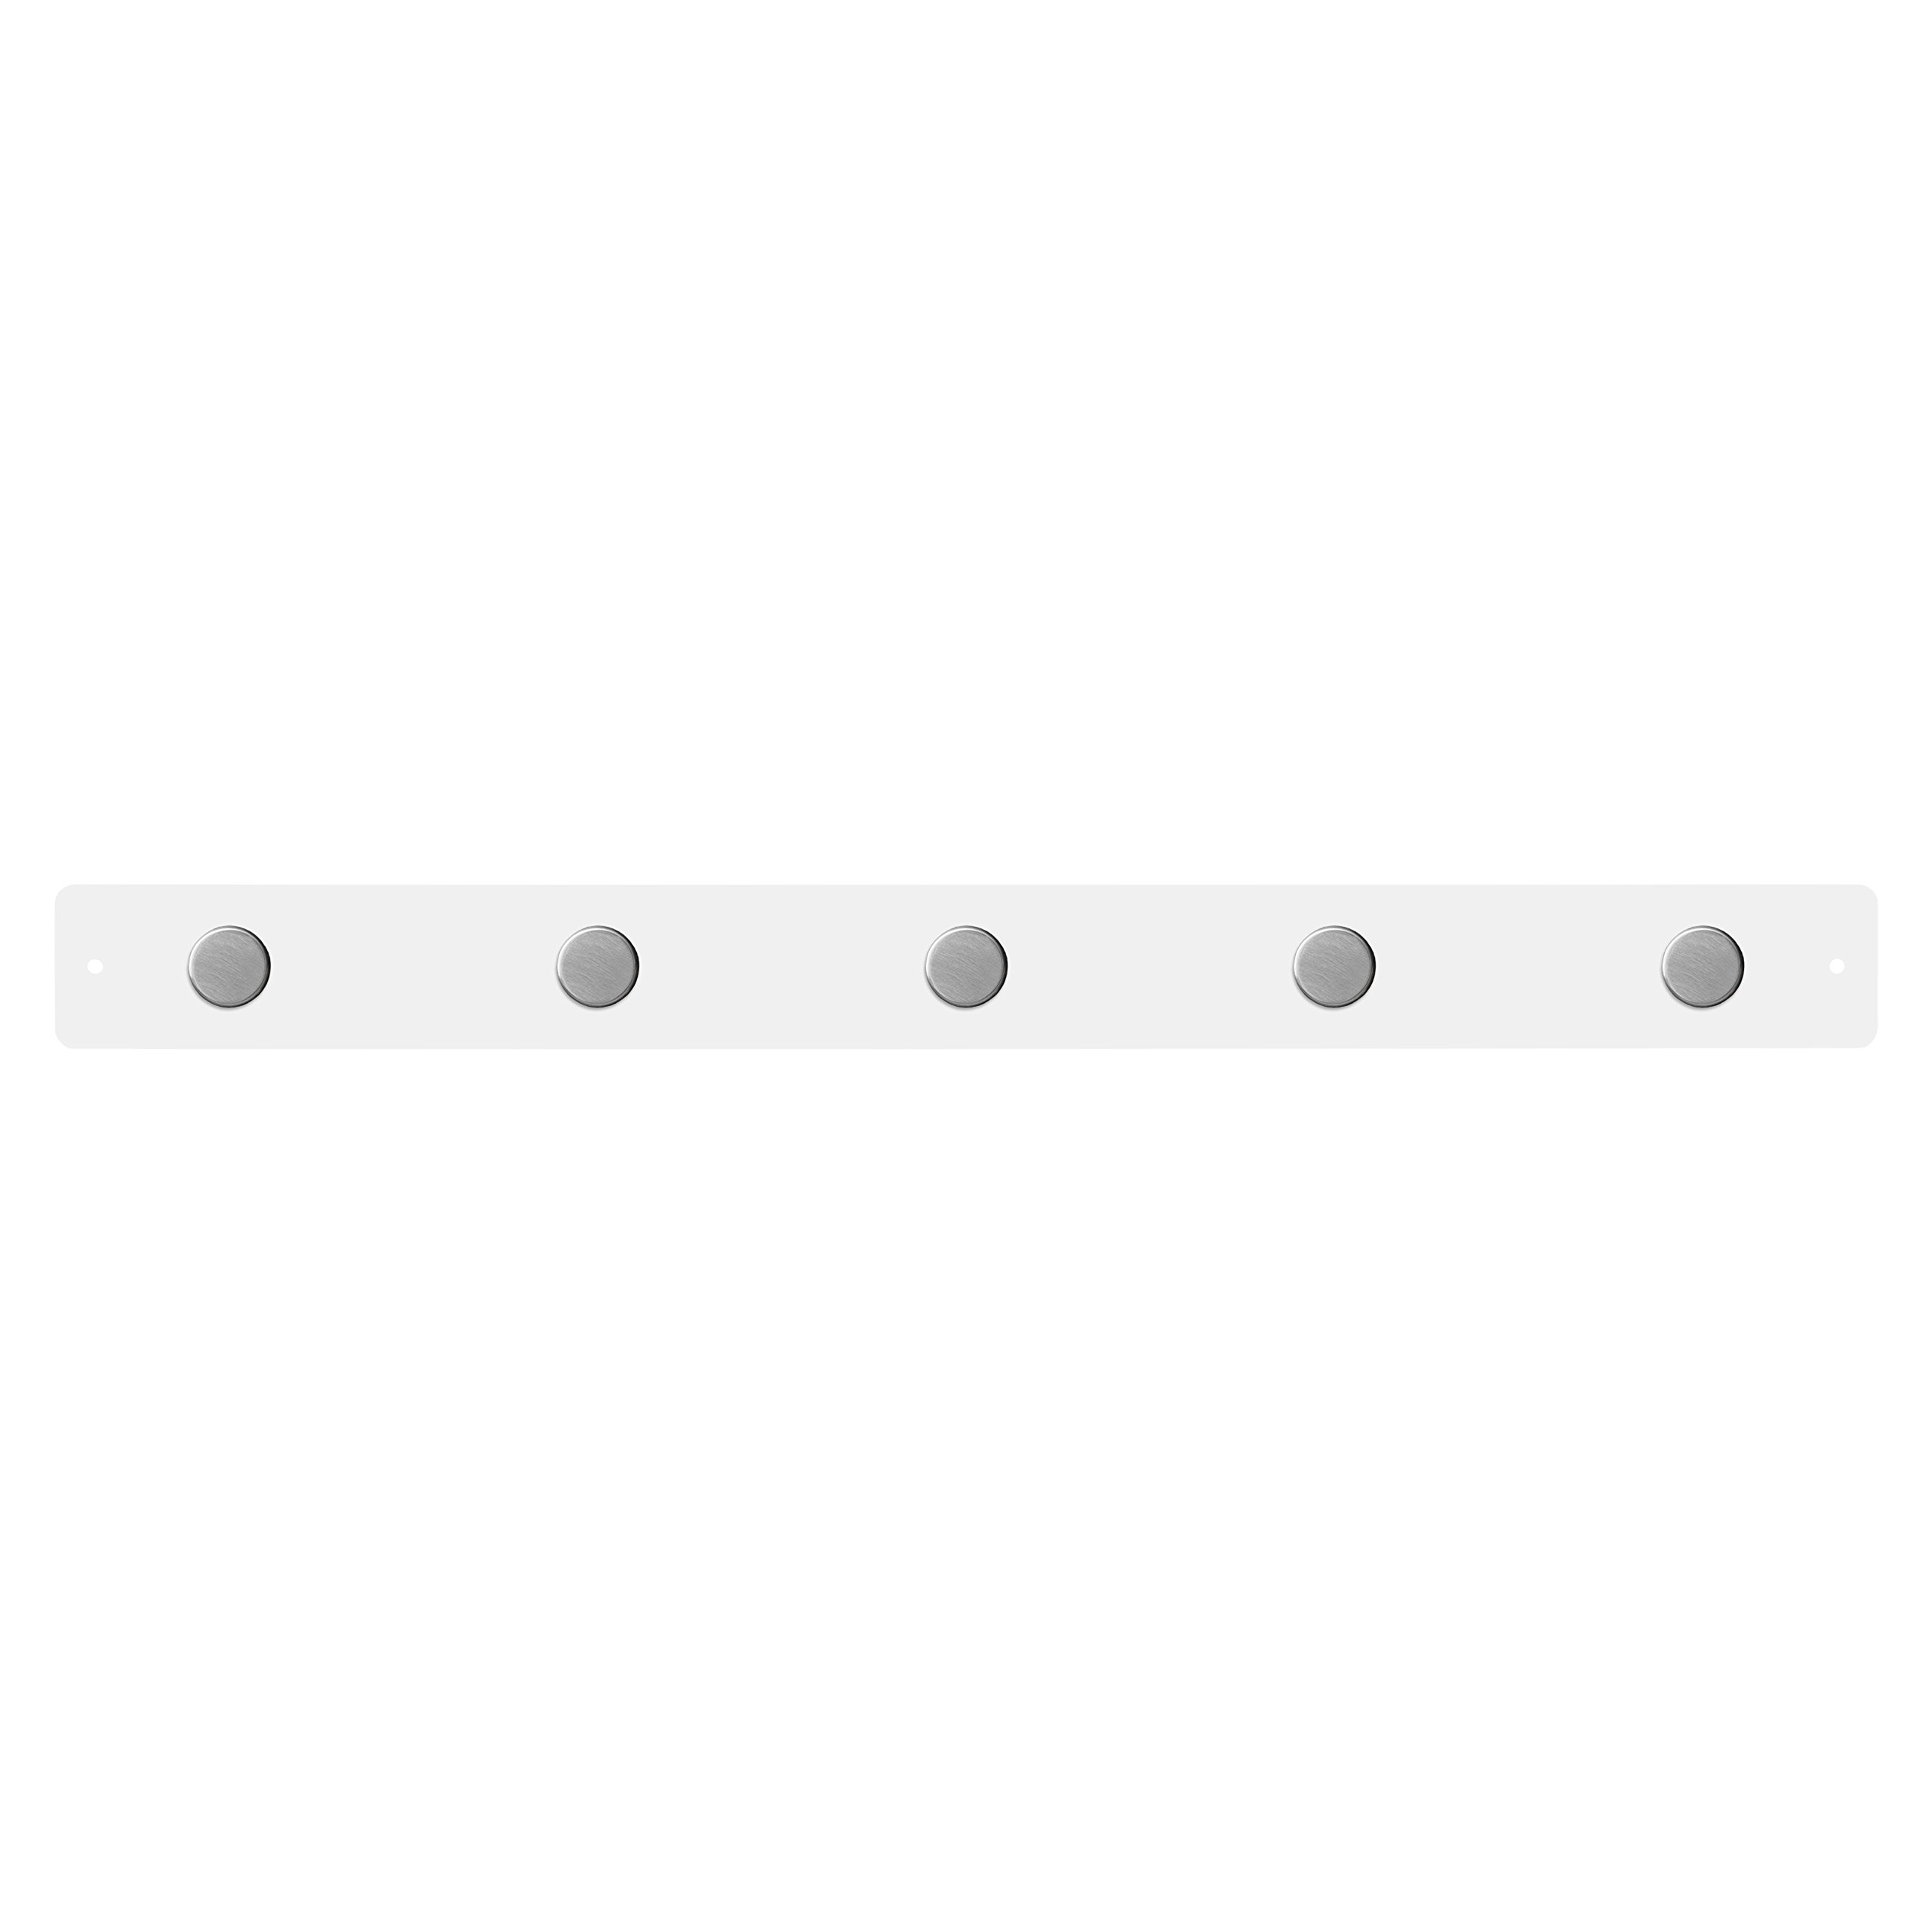 Three by Three Seattle Magnetic Strip Bulletin Board White with 5 Large Snap Magnets-(31141)